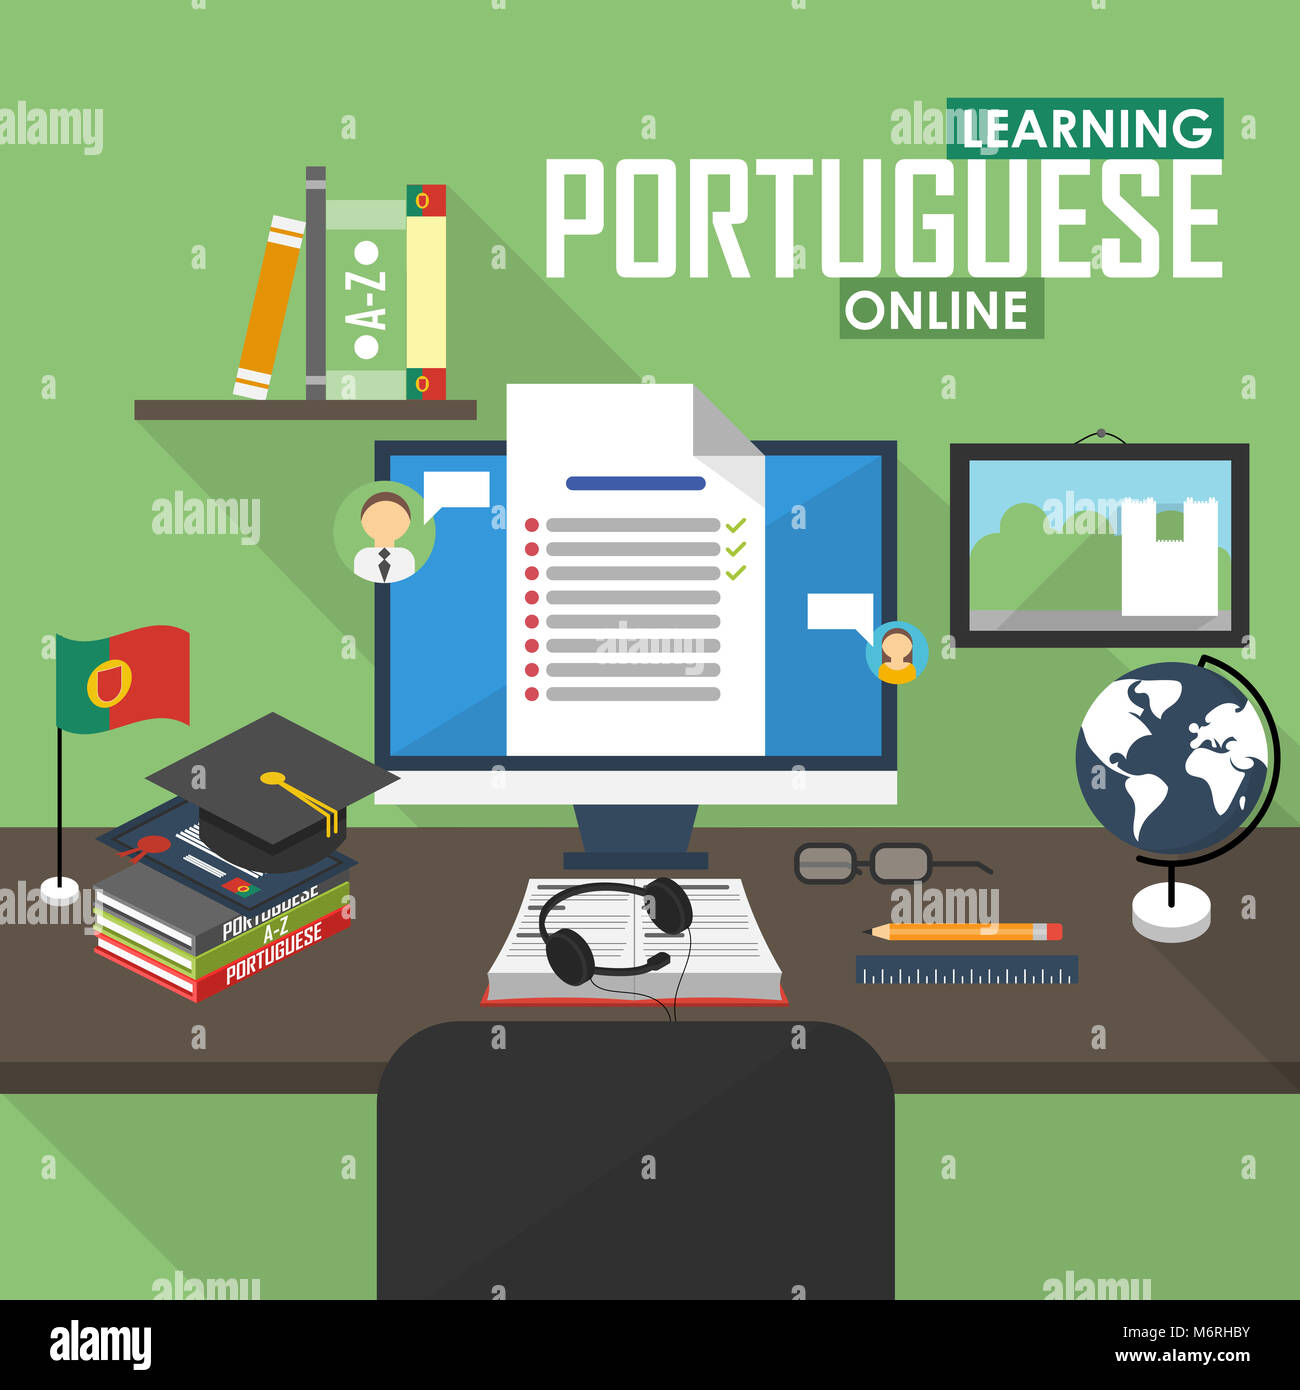 Flat design illustration concept of learning Portuguese language online, distance education and online training Stock Photo